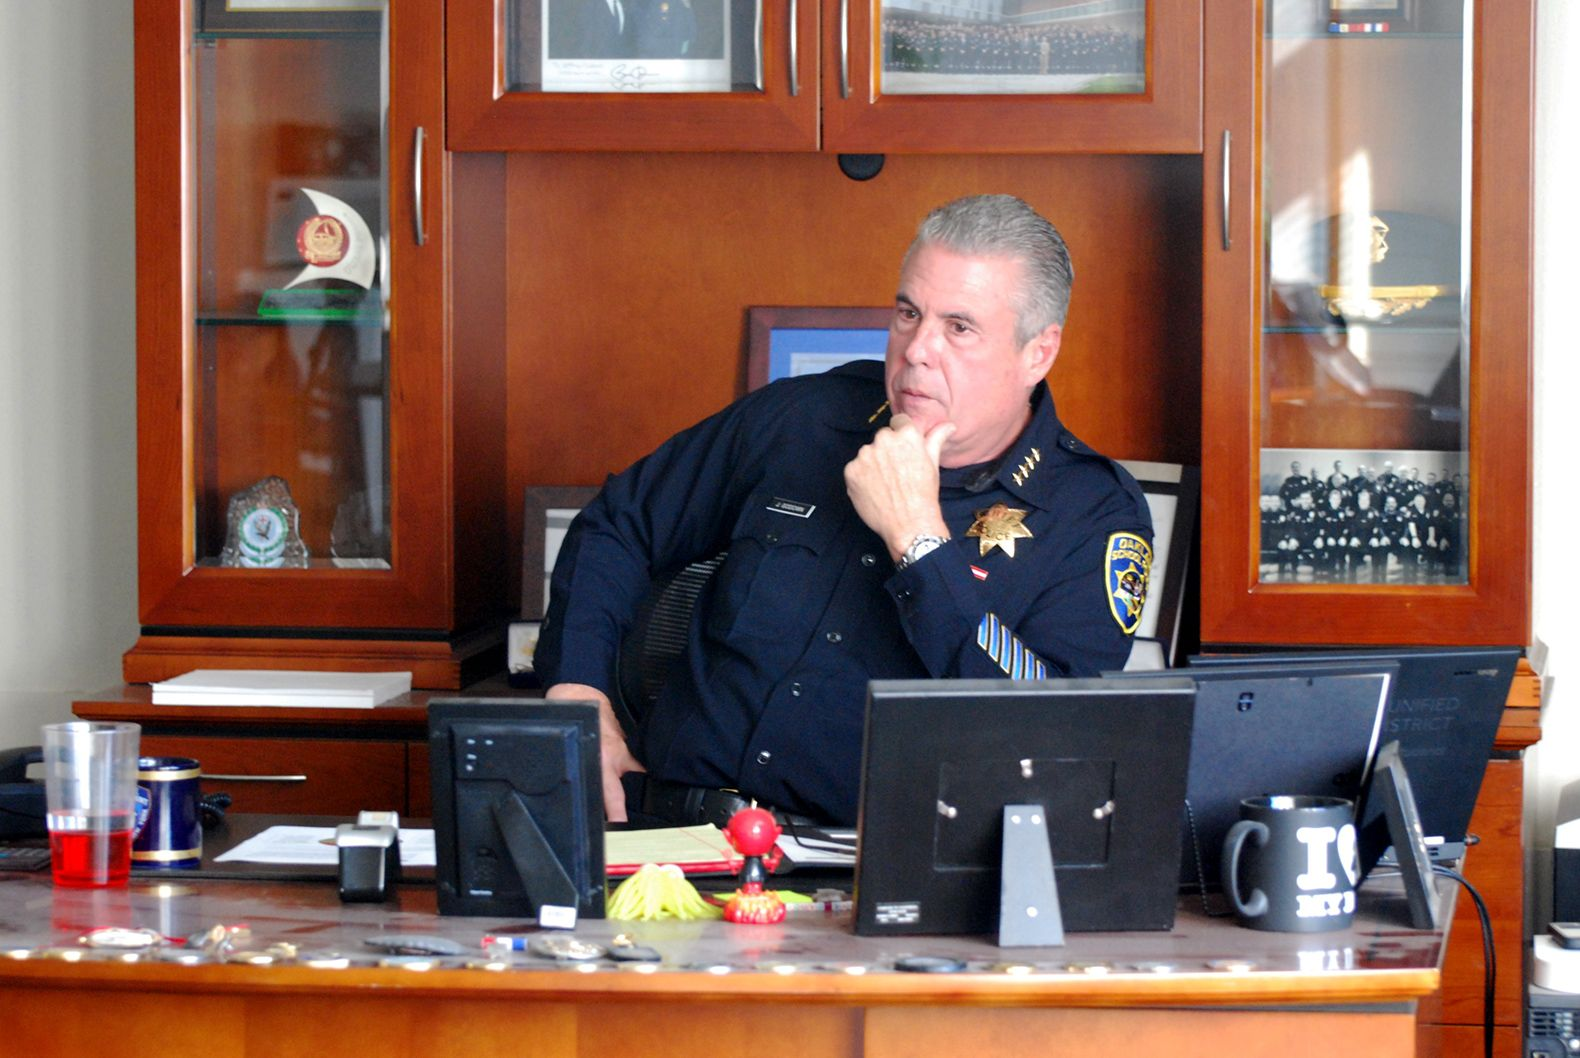 Chief Jeff Godown sits at his desk at the police station. Godown has been in law enforcement for 36 years.